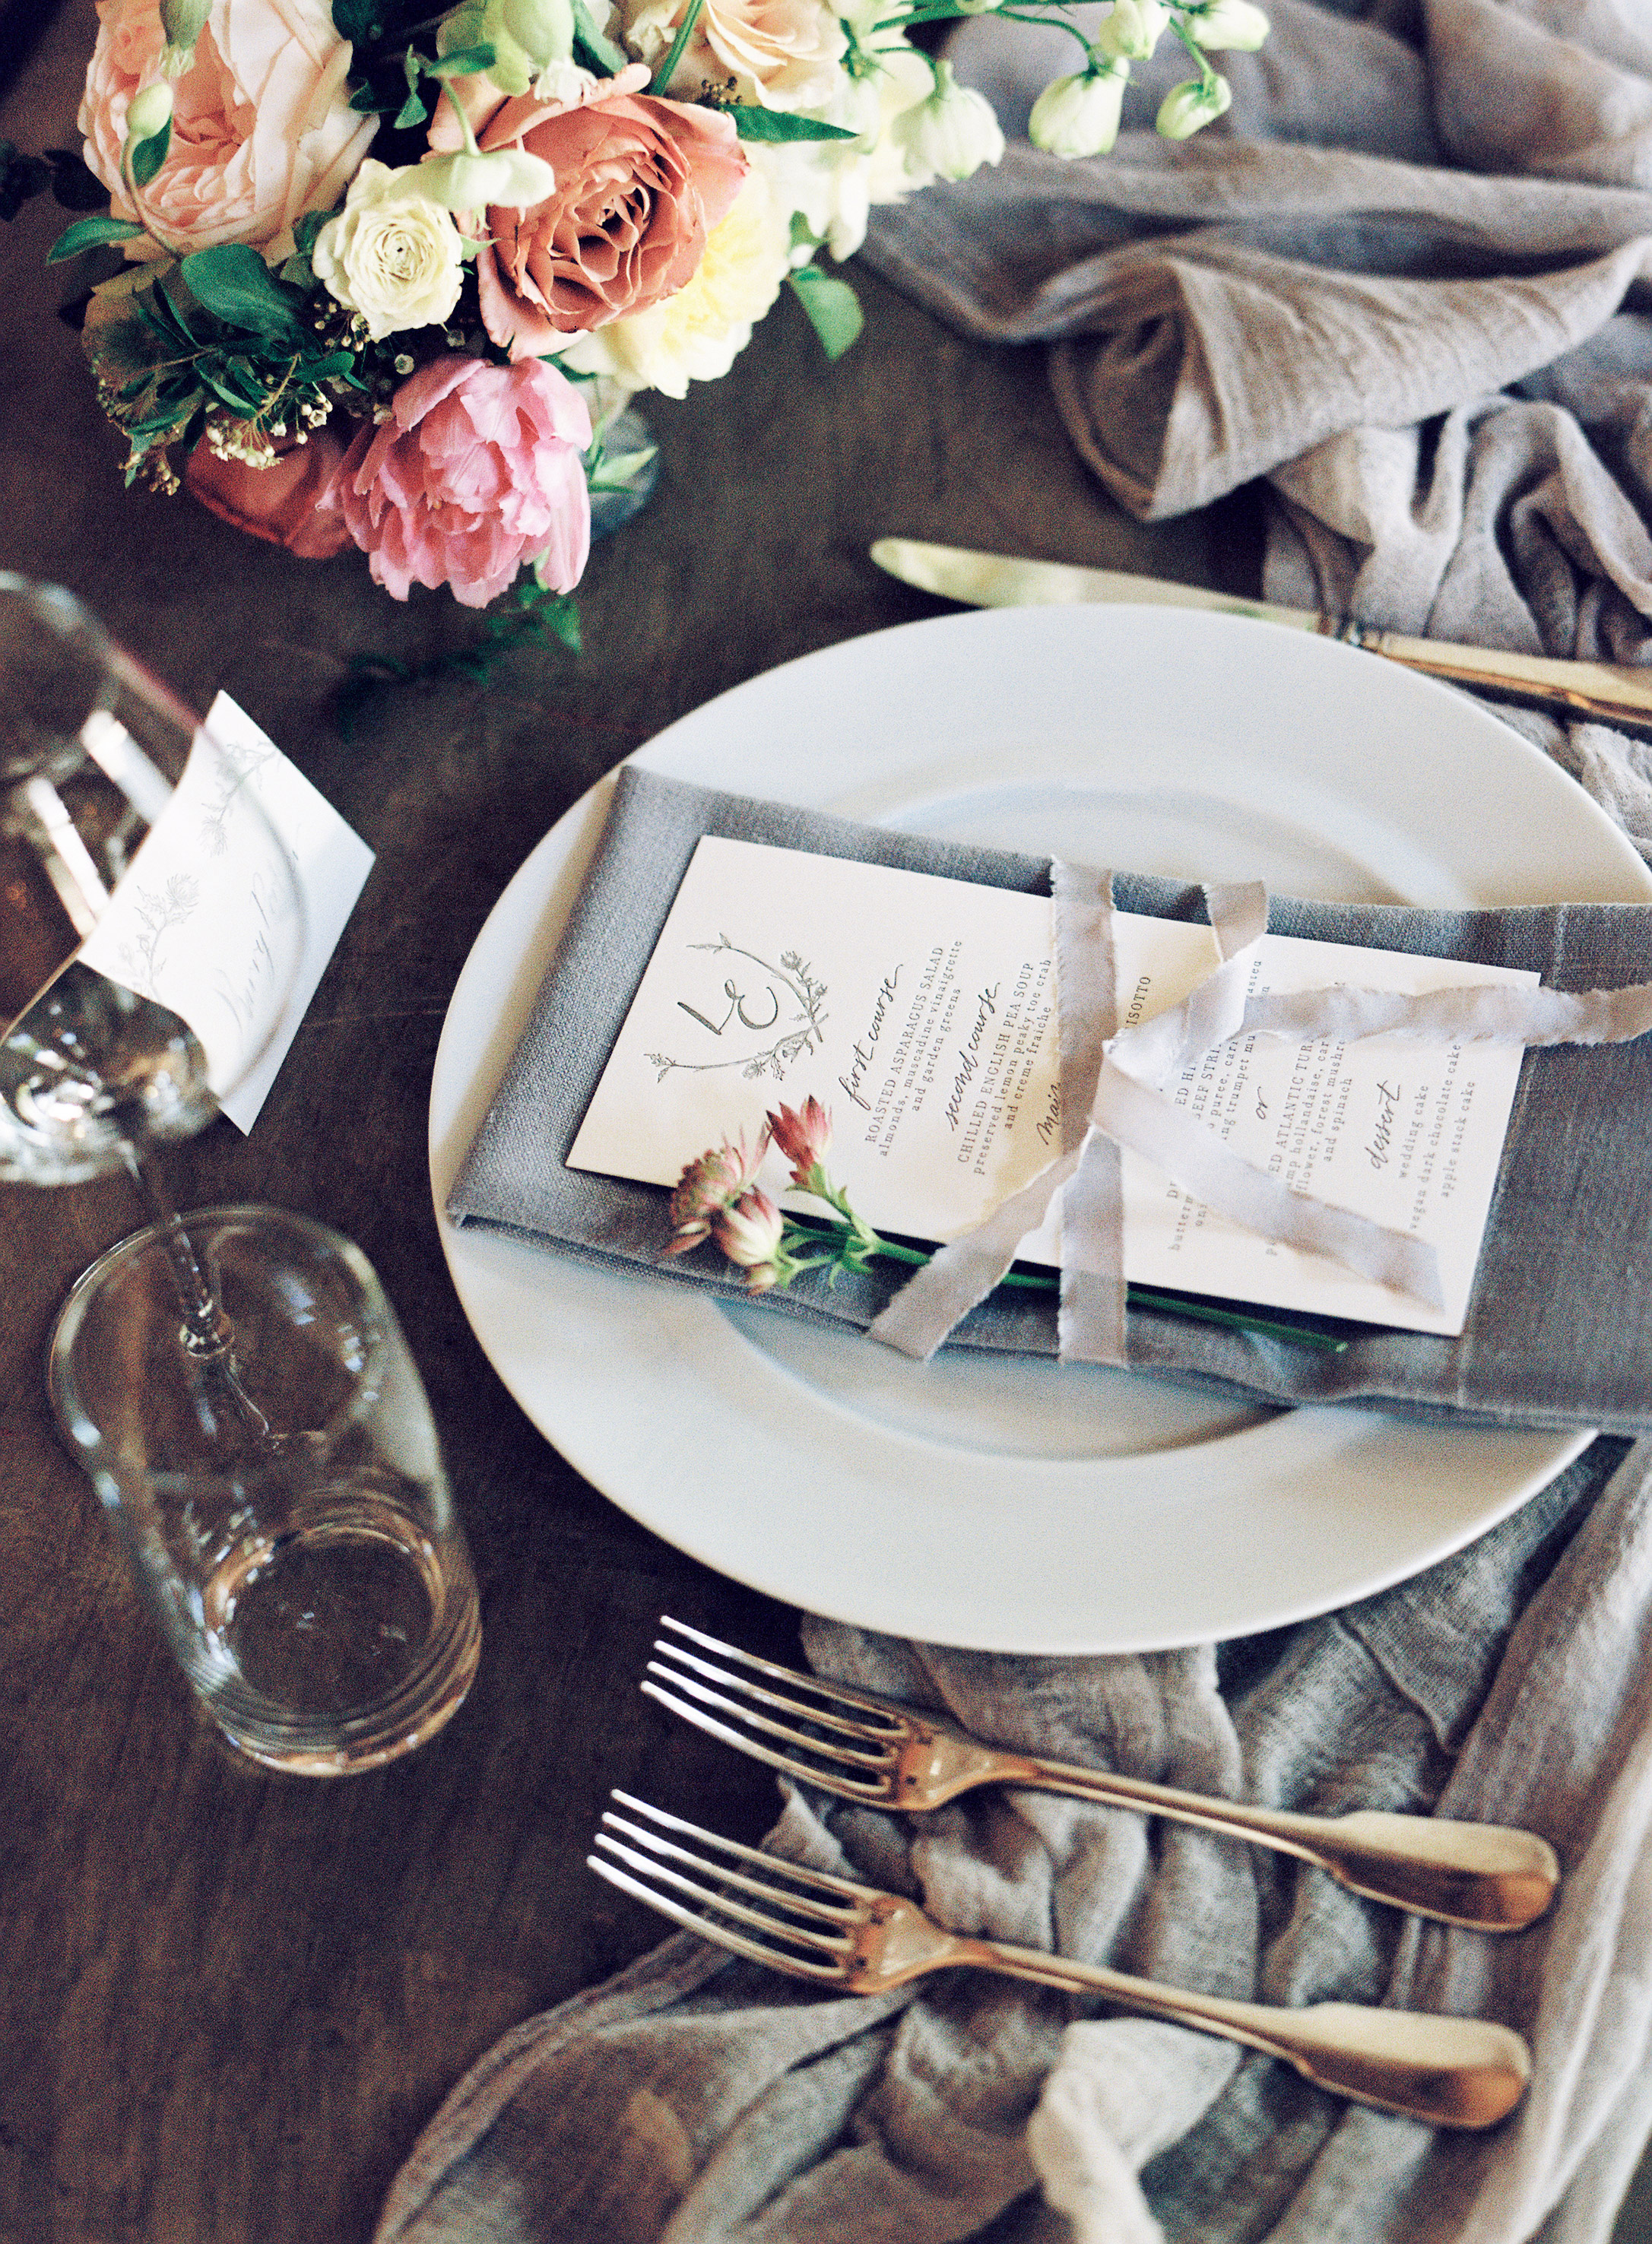 Larkin & Eric's Tennessee wedding - place setting